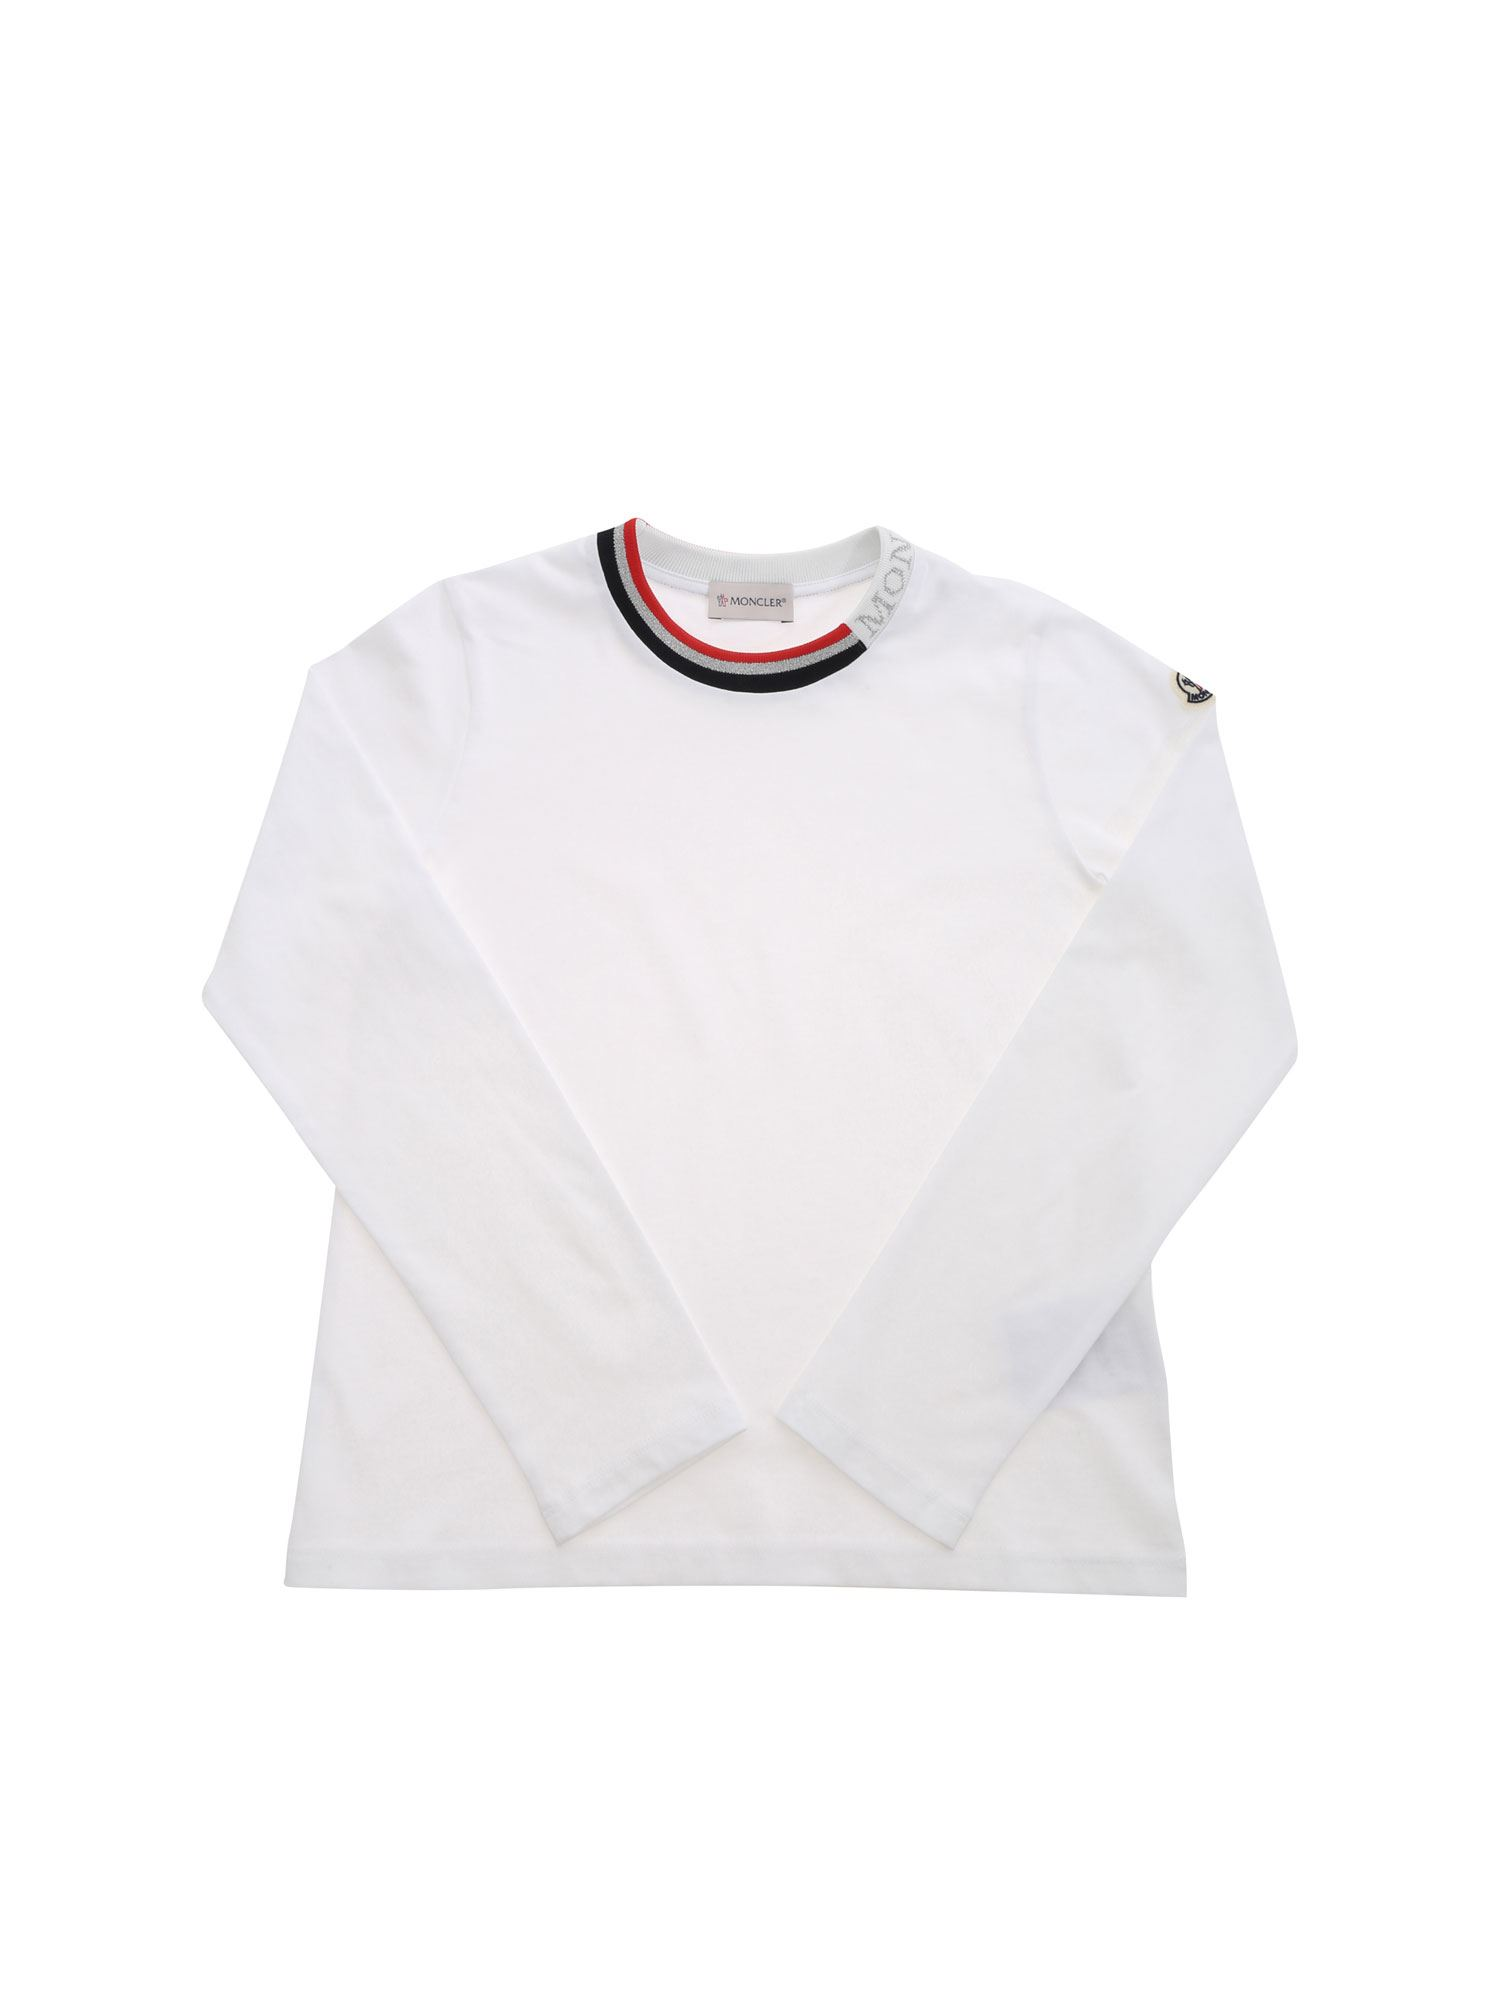 Moncler Jr LAMÉ LOGO T-SHIRT IN WHITE